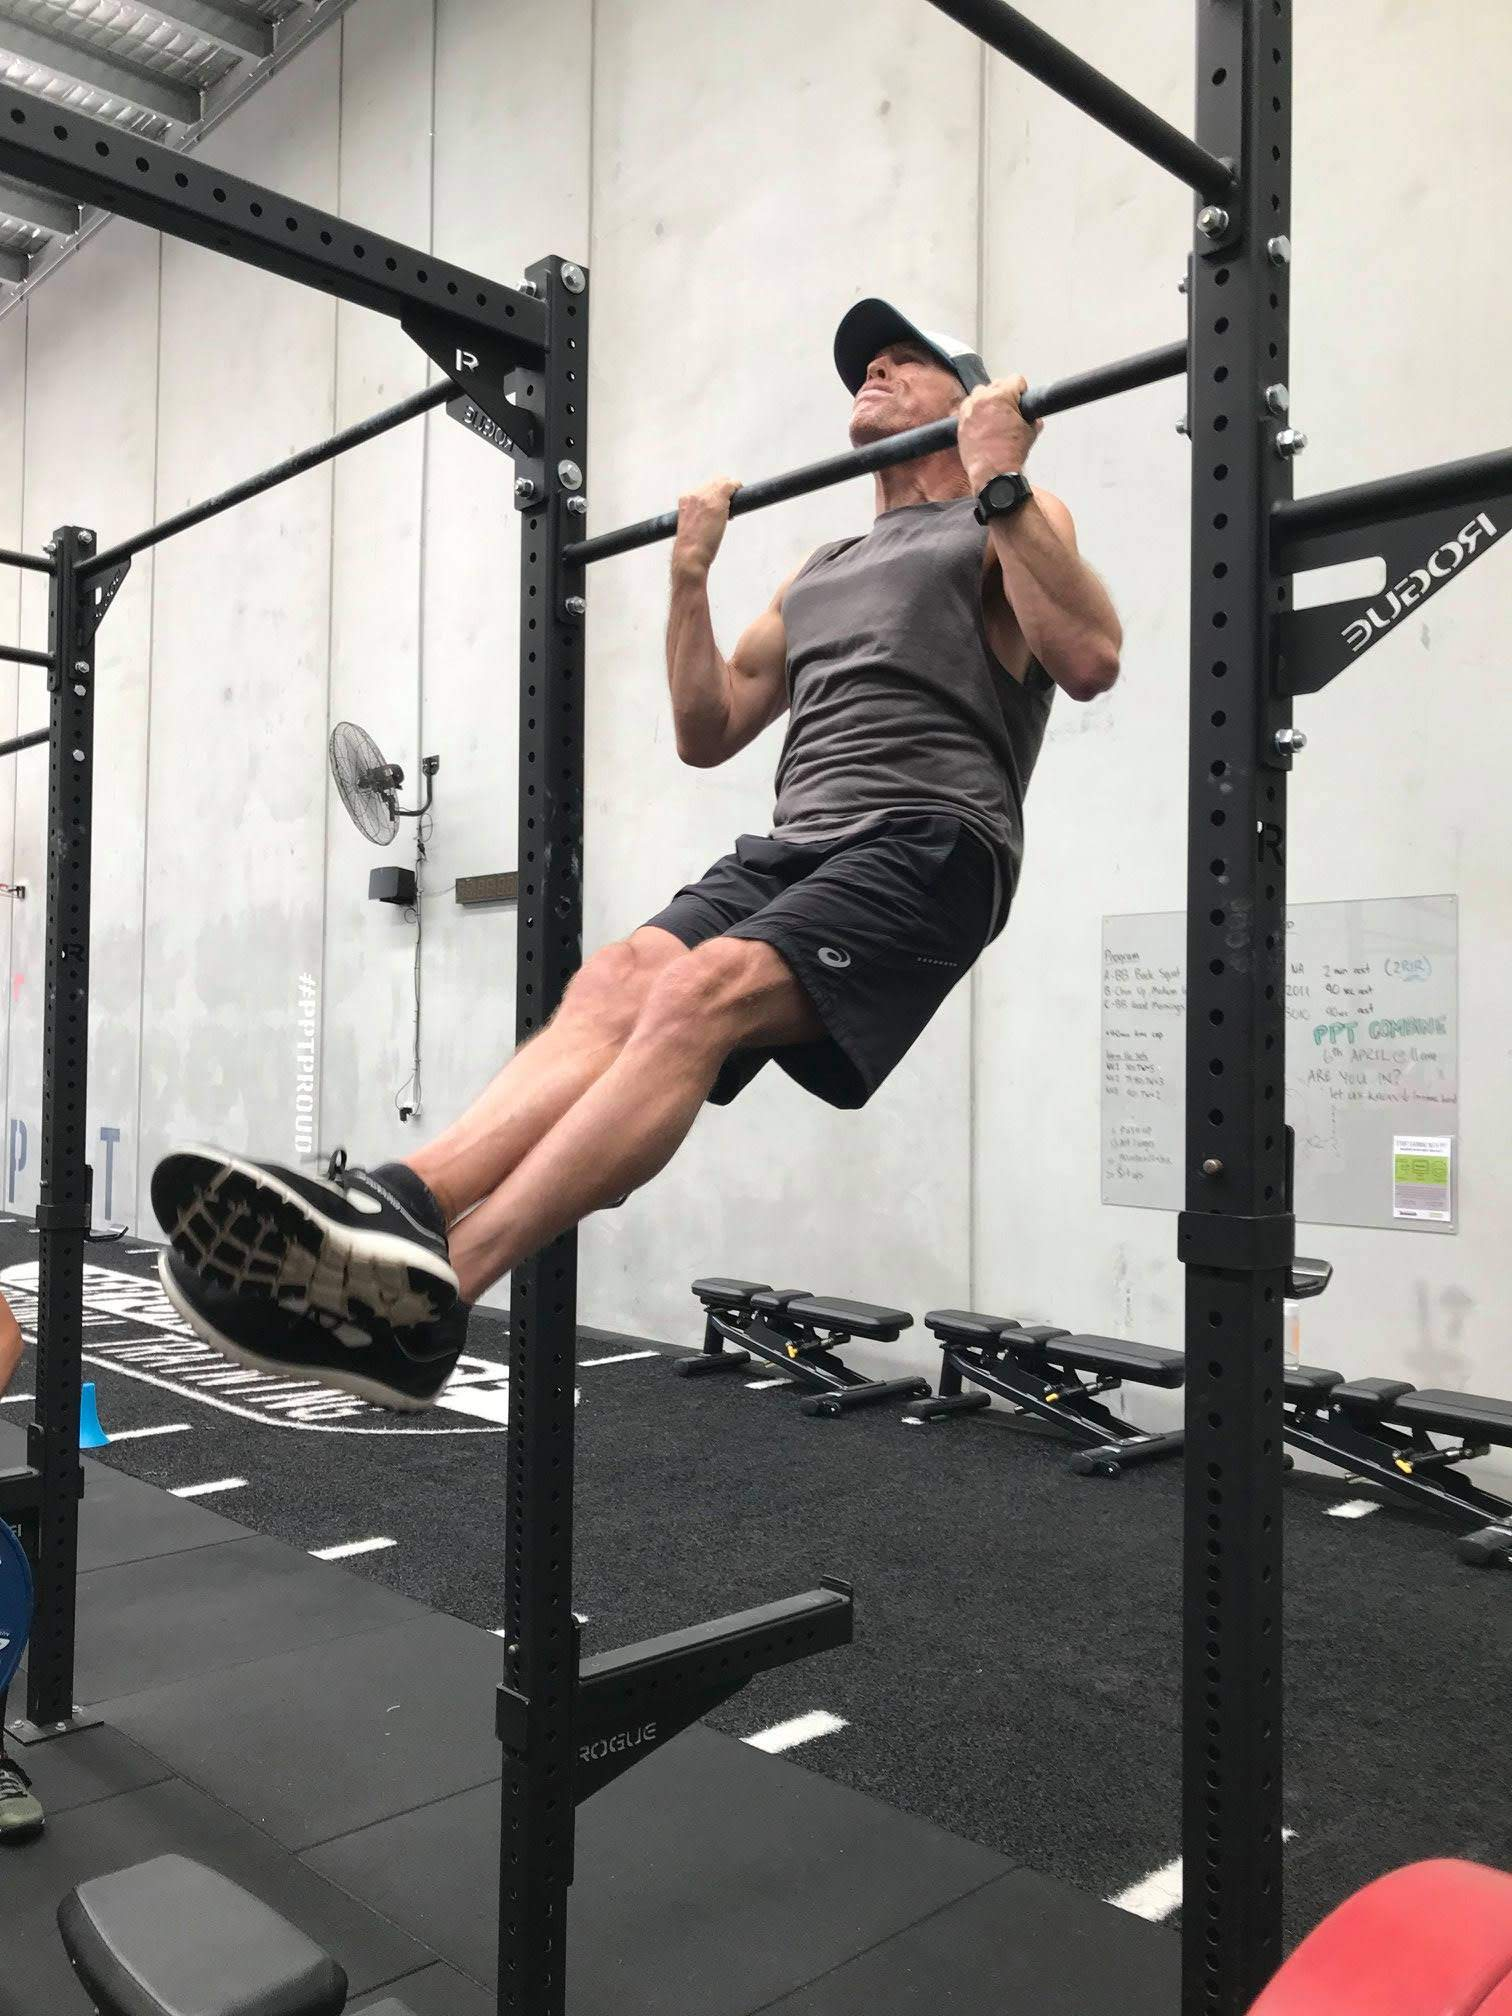 Performance PT Camden NSW COMBINE challenge and event